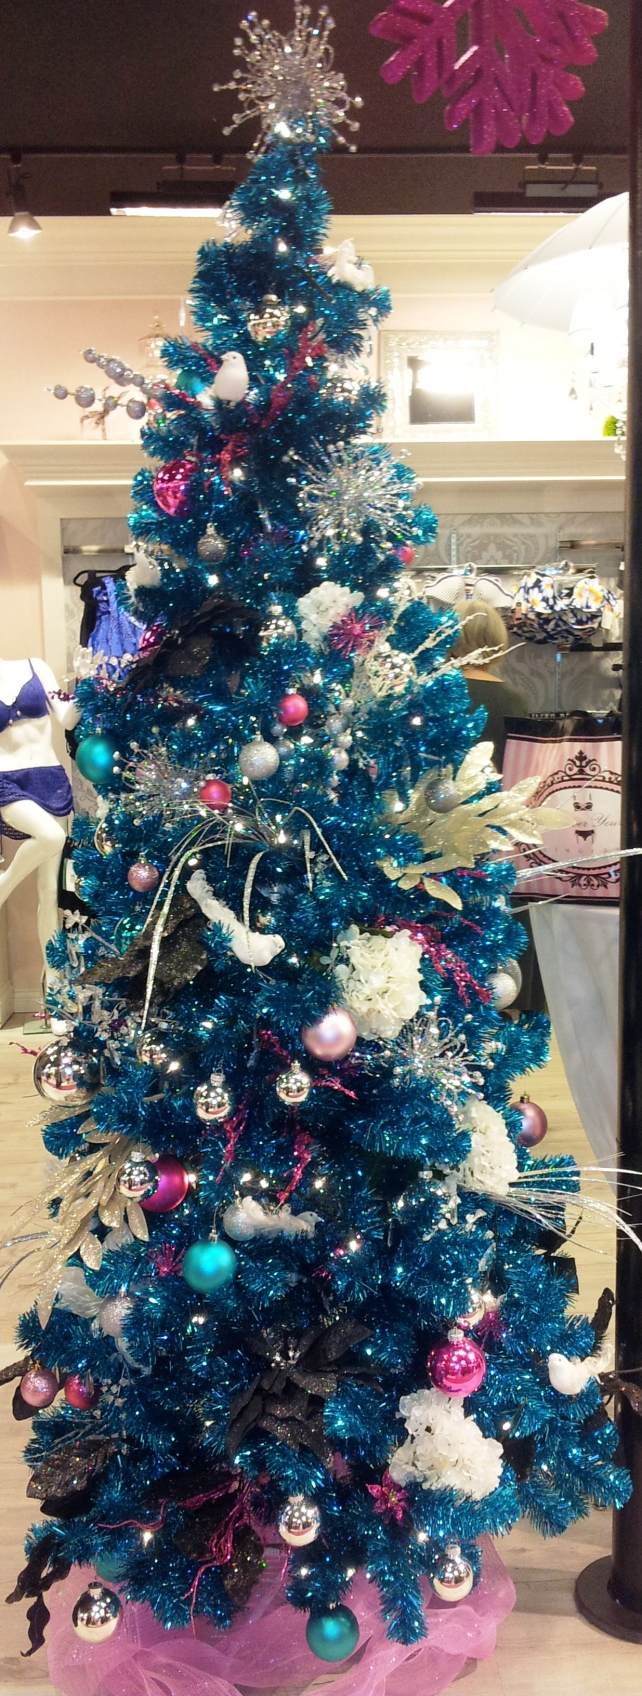 A blue tree: my new Christmas style inspiration.